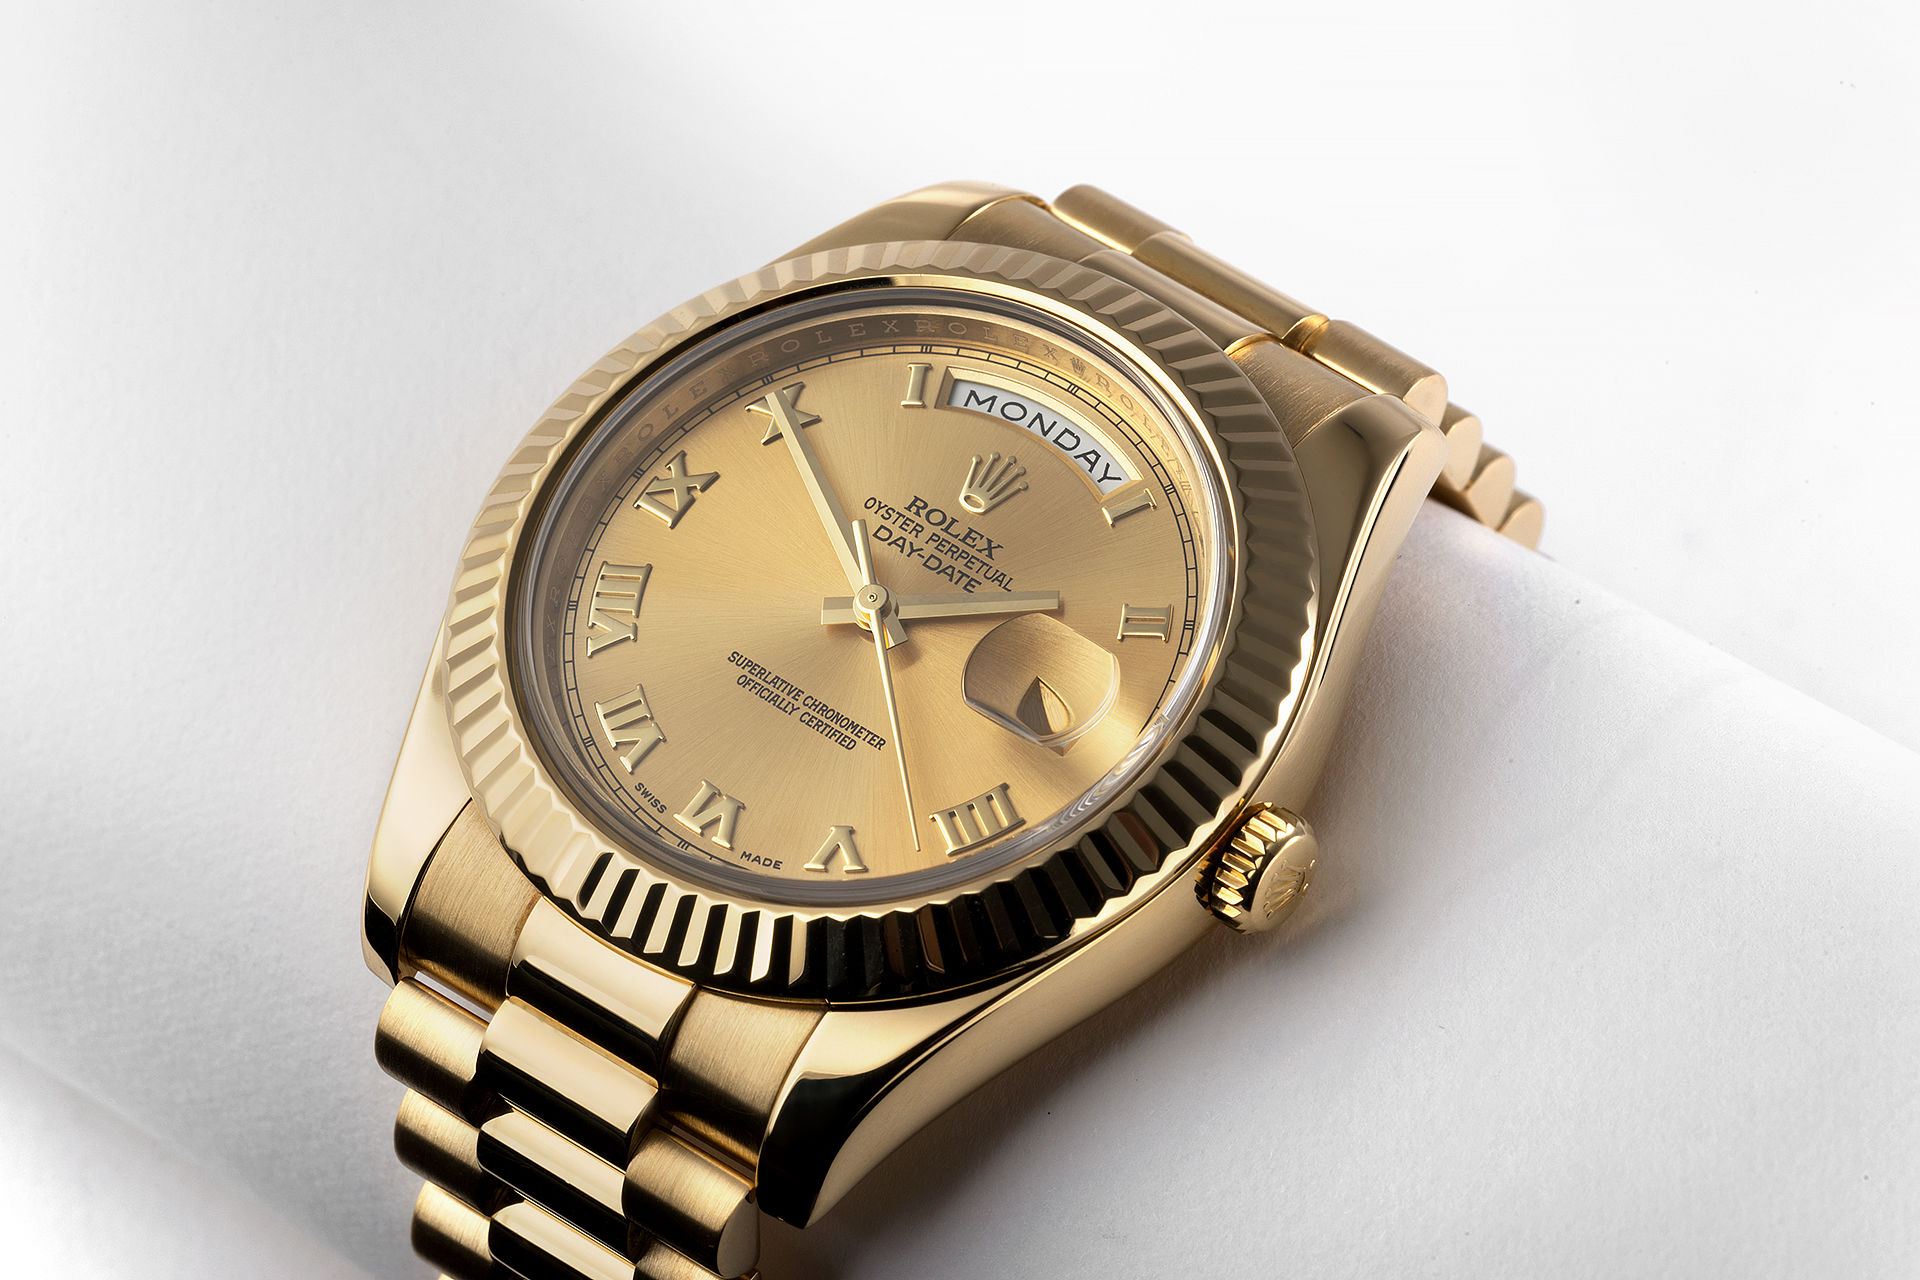 ref 218238 | 41mm Yellow Gold | Rolex Day-Date II